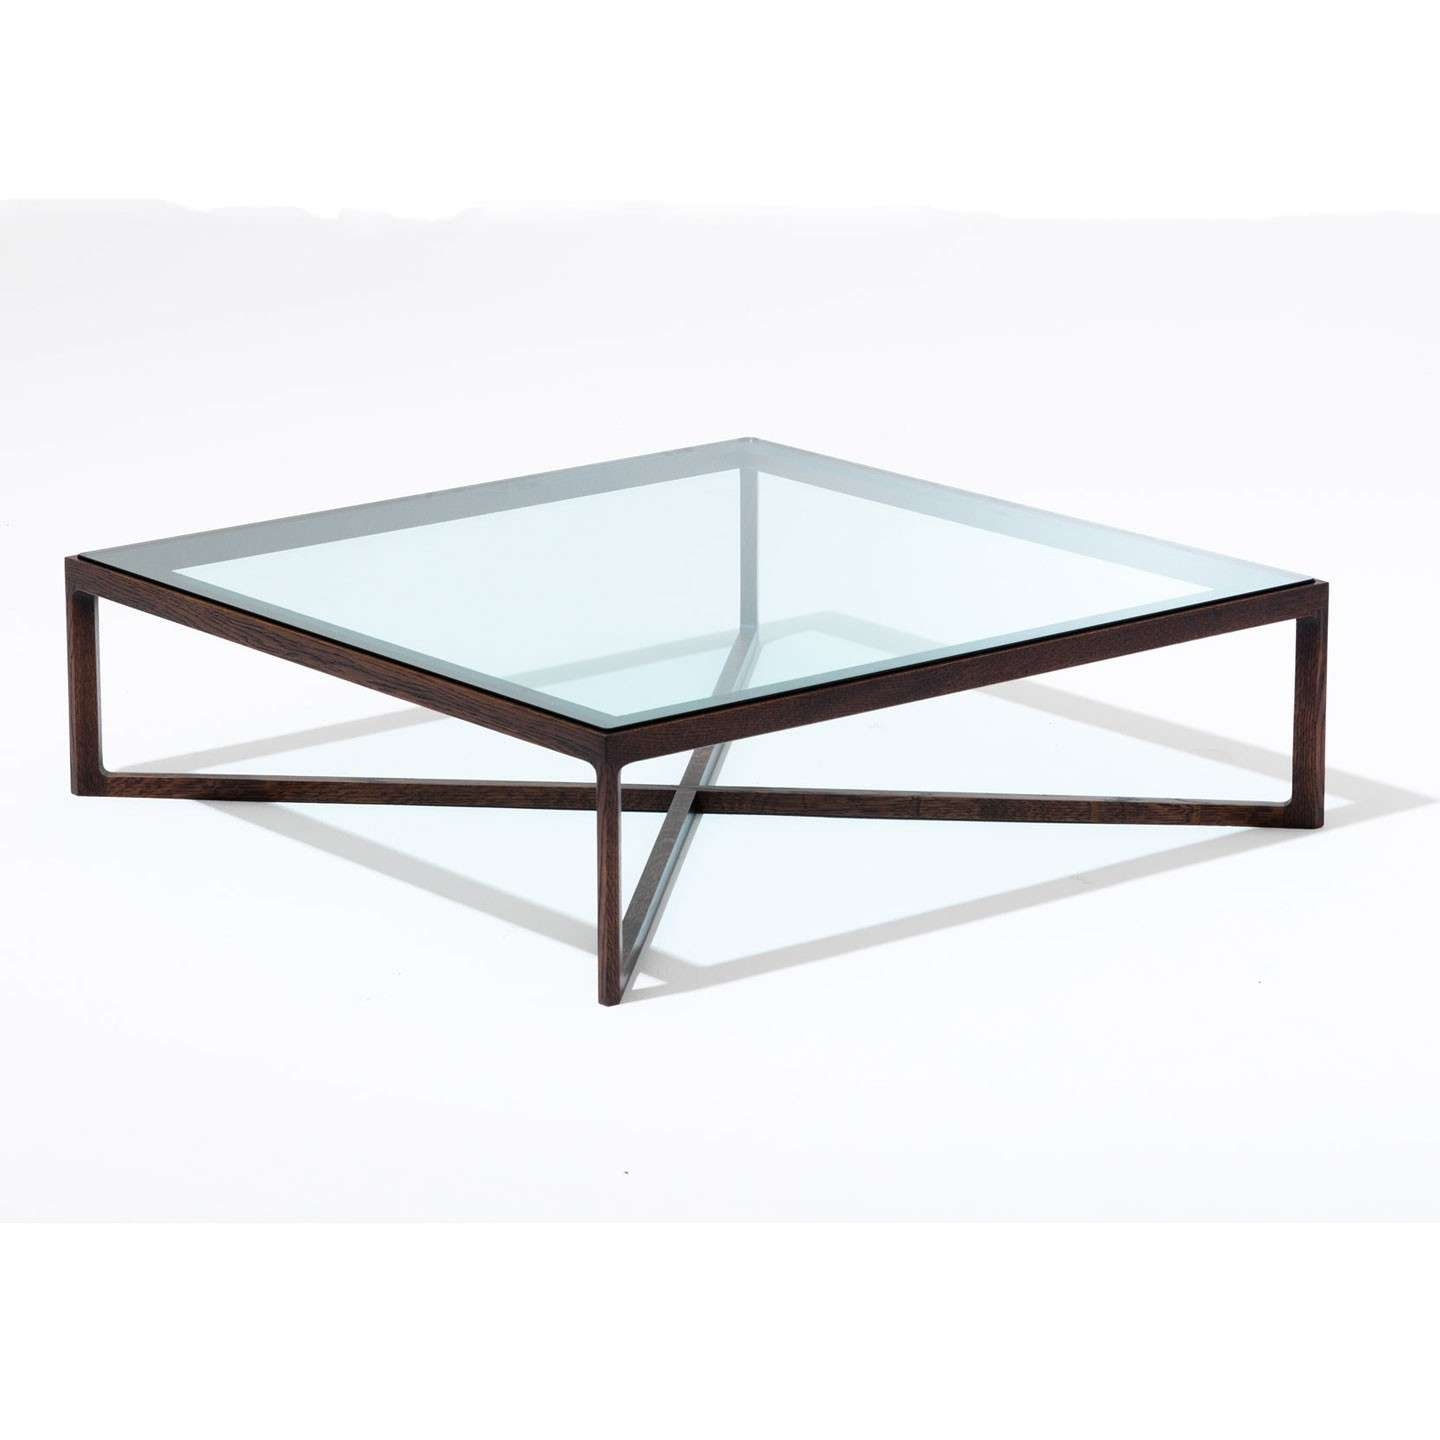 Extra Large Square Glass Coffee Table • Coffee Table Ideas Regarding 2017 Large Square Glass Coffee Tables (View 6 of 20)